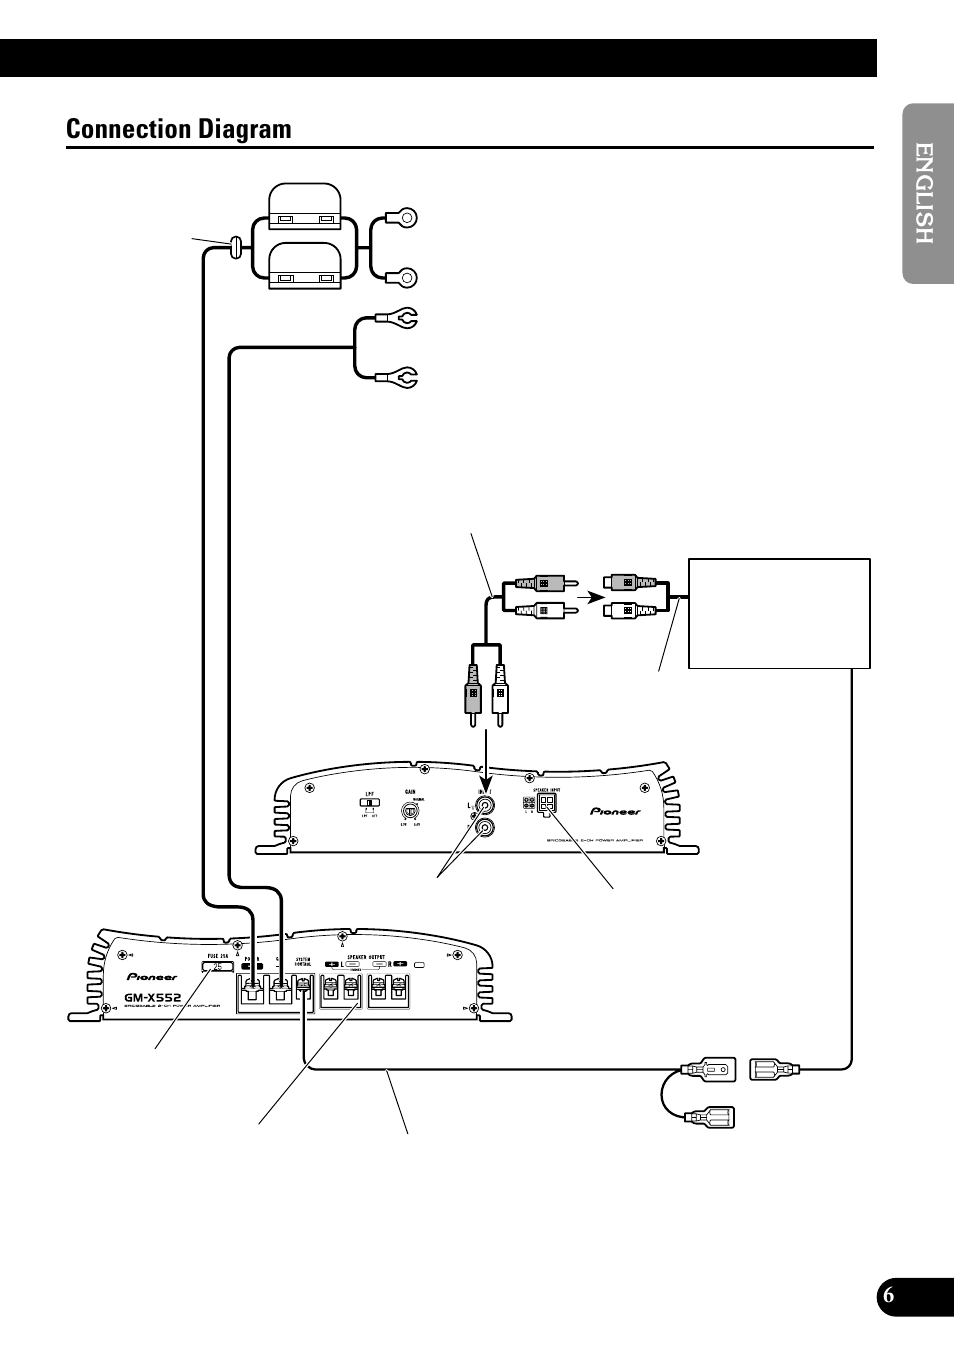 hight resolution of wiring diagram for auto antenna